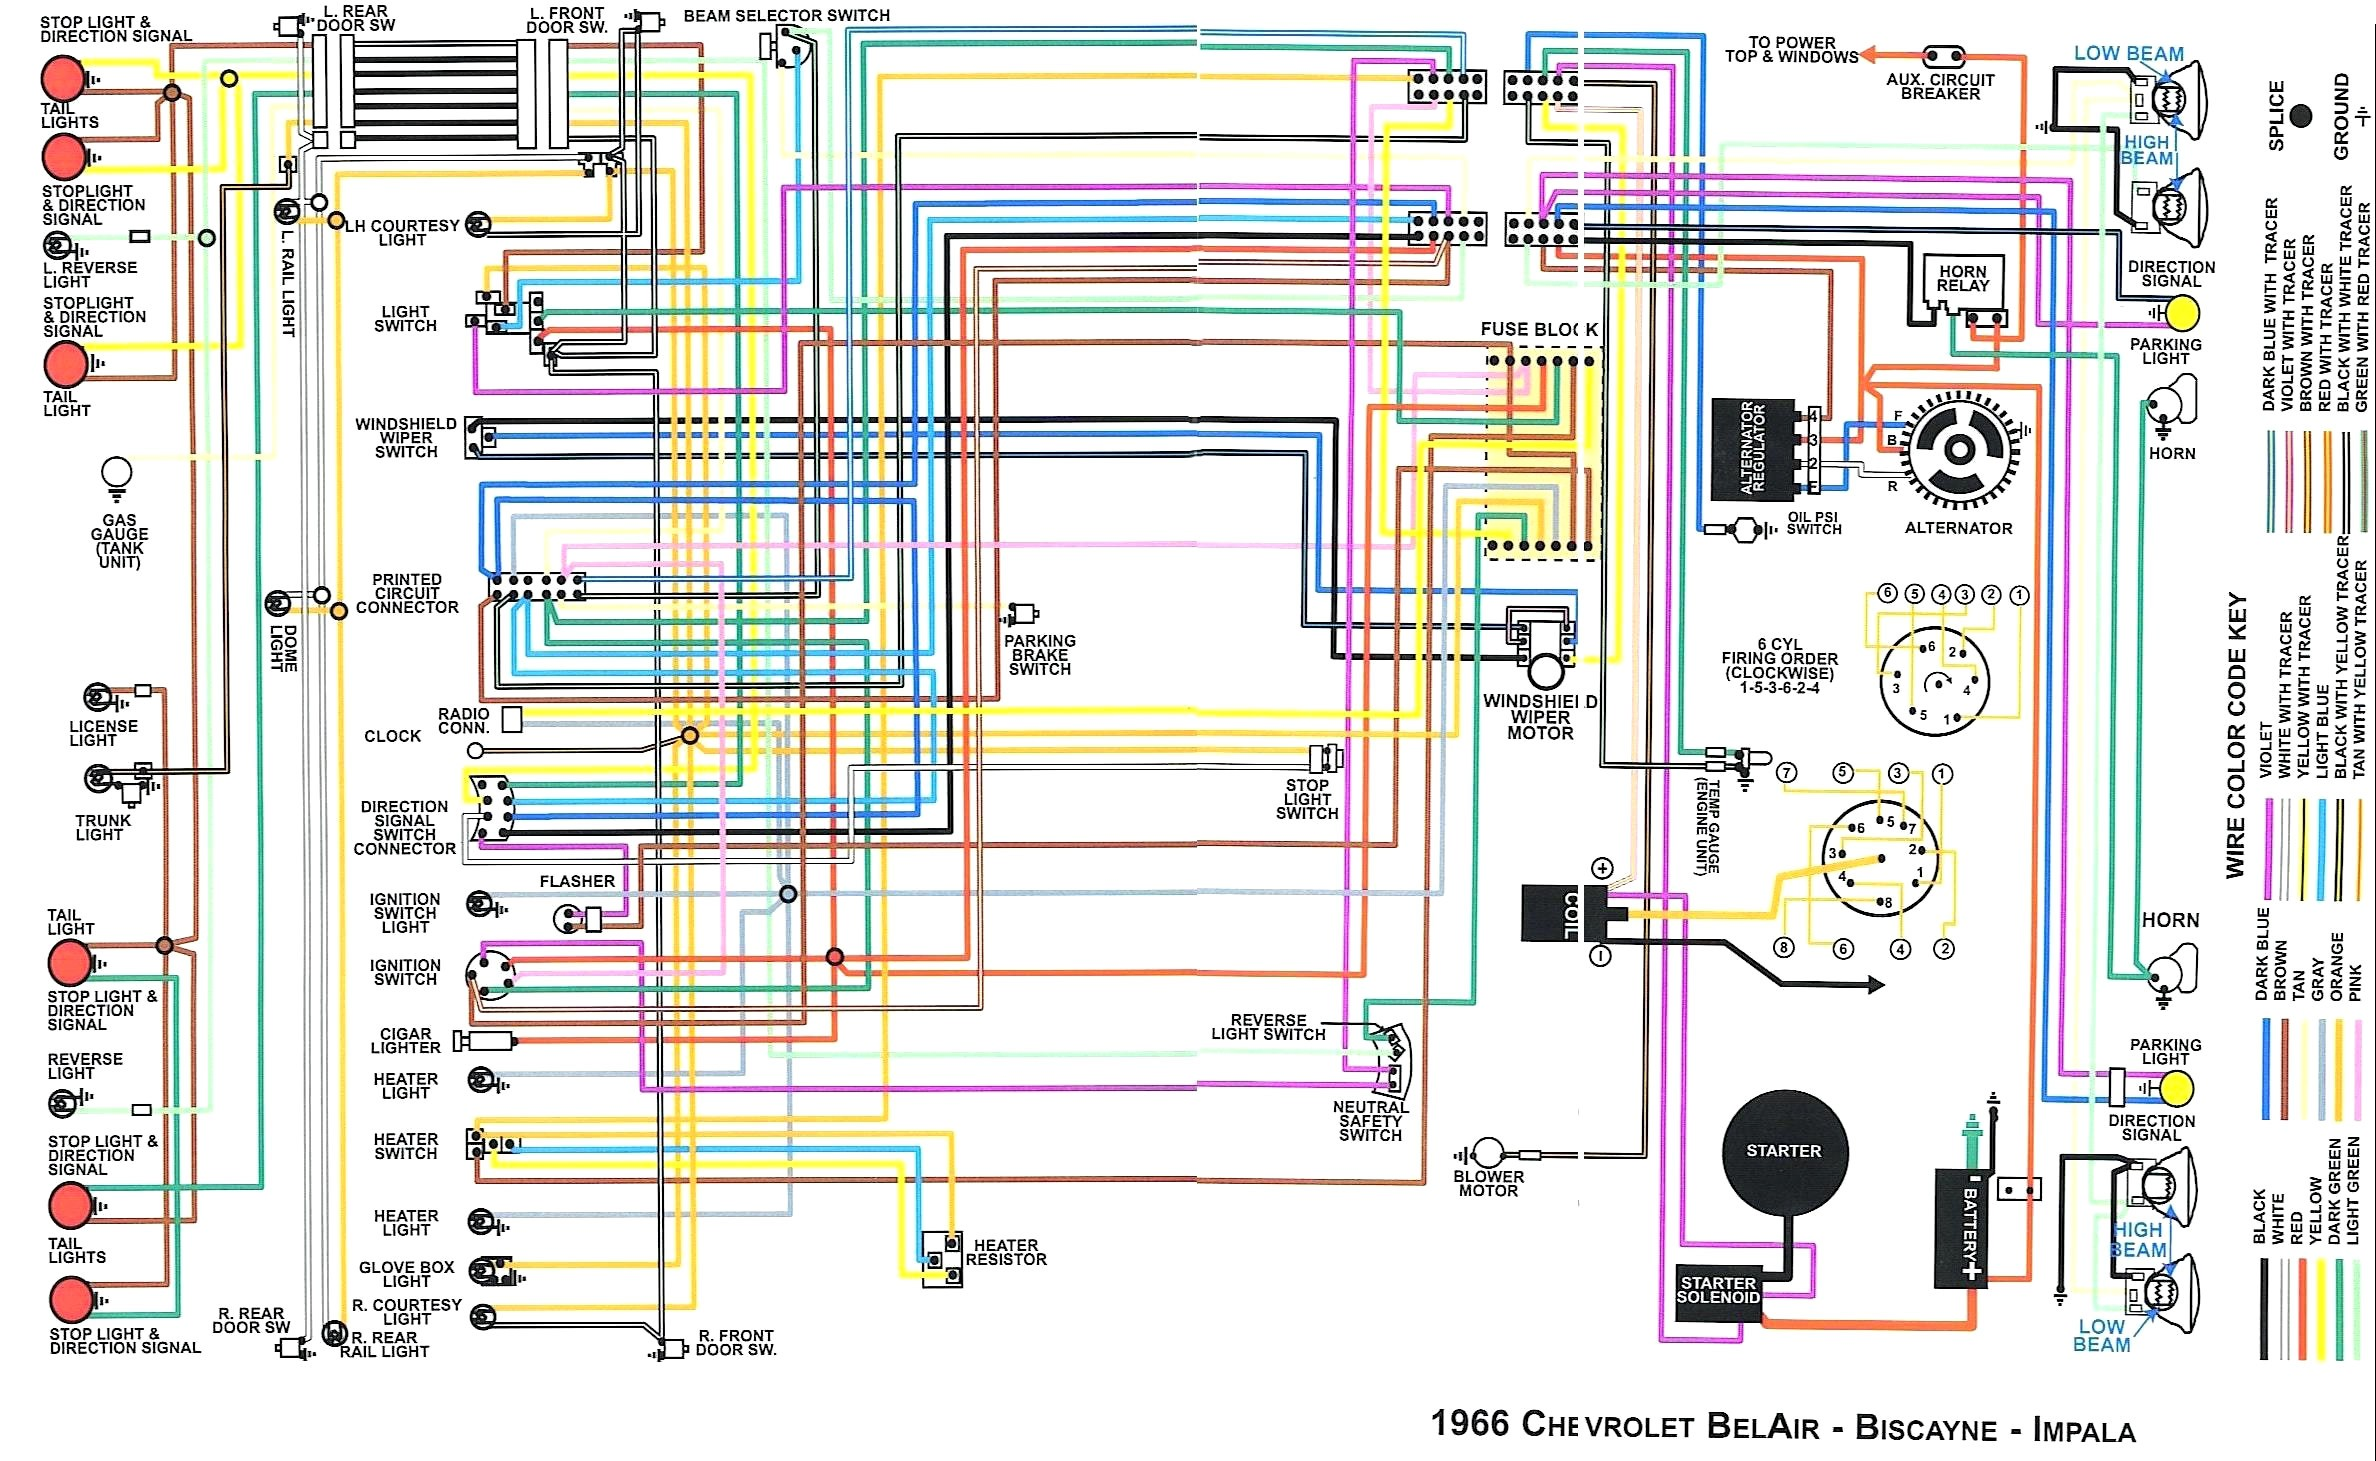 Remarkable 67 Chevelle Ignition Switch Wiring Diagram Wiring Diagram Read Wiring Cloud Lukepaidewilluminateatxorg